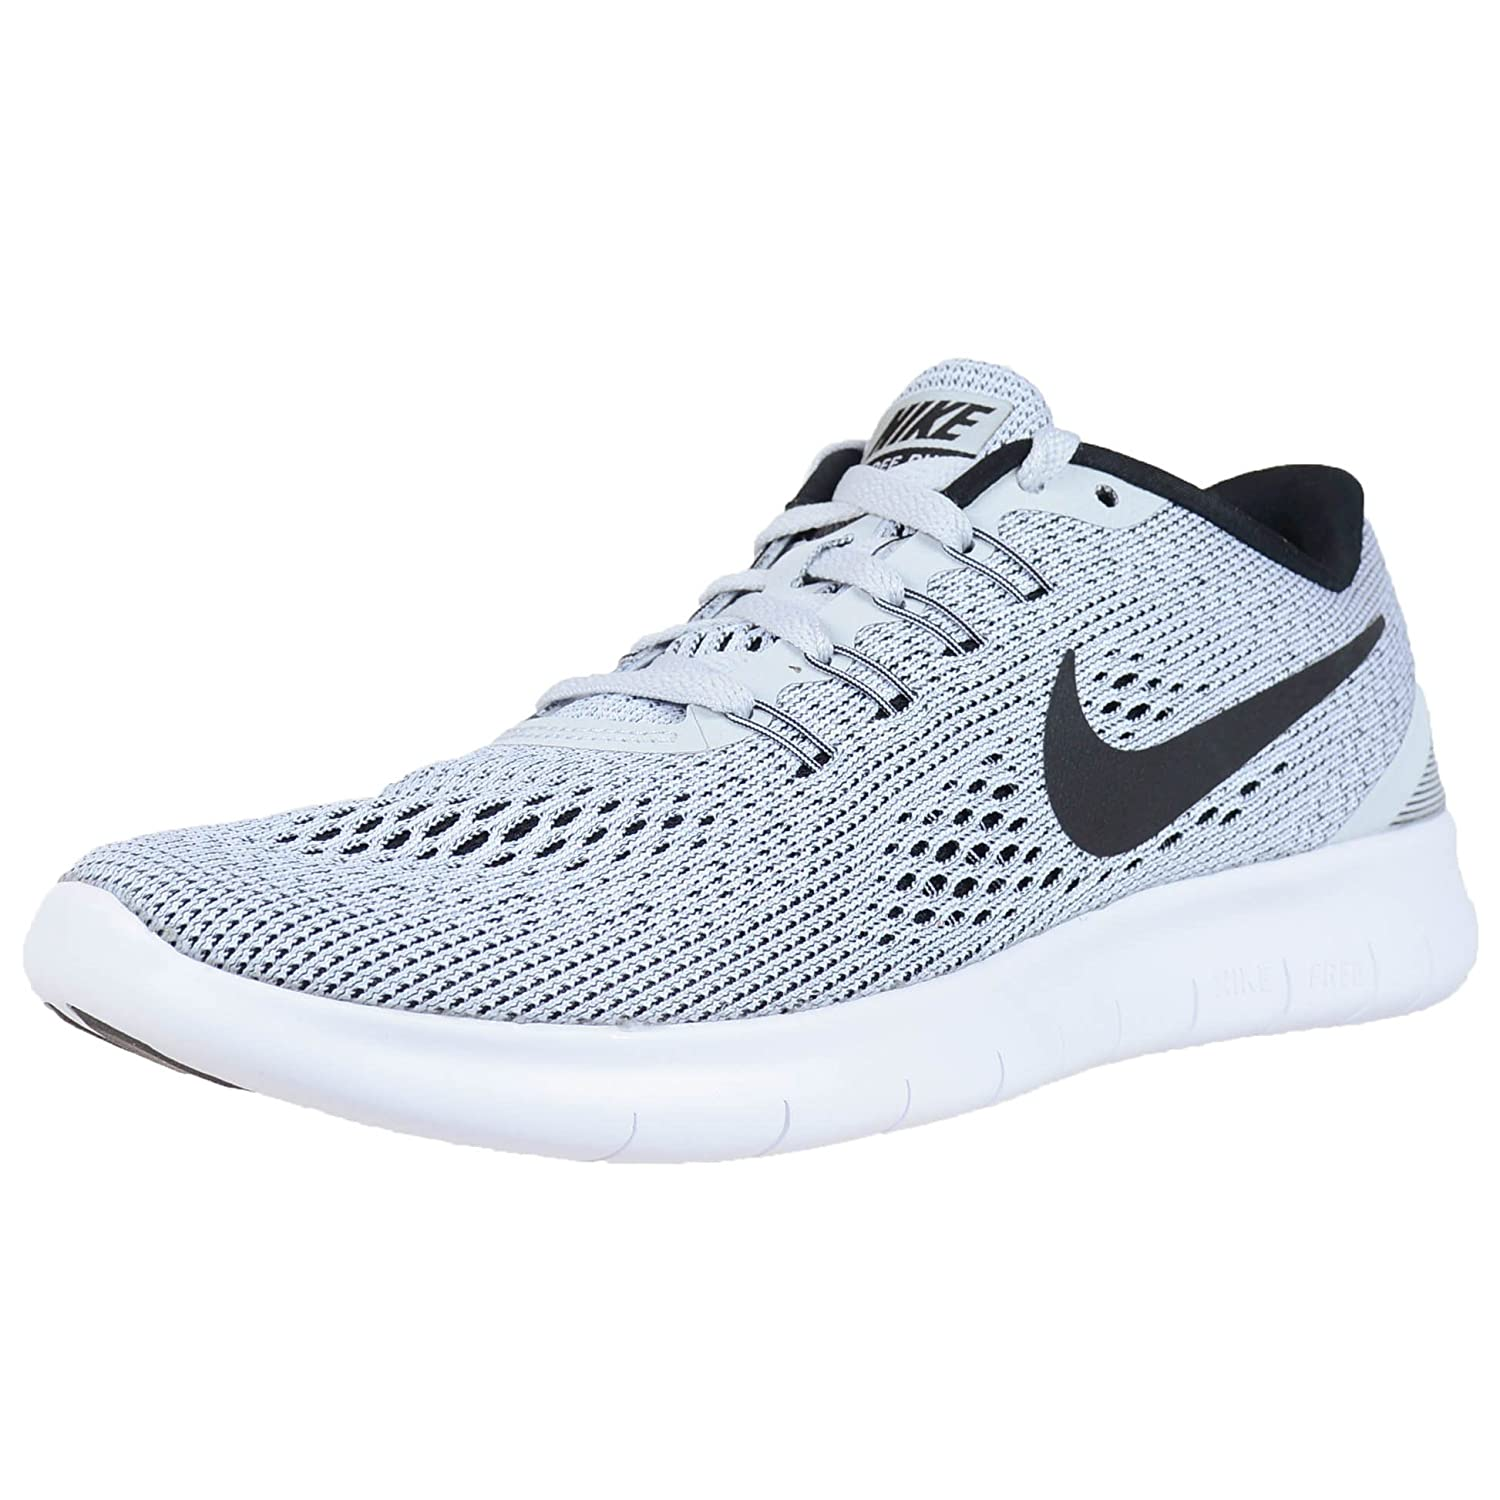 san francisco a52a6 a7494 Nike Free RN, Chaussures de Running Entrainement Homme  Amazon.fr   Chaussures et Sacs